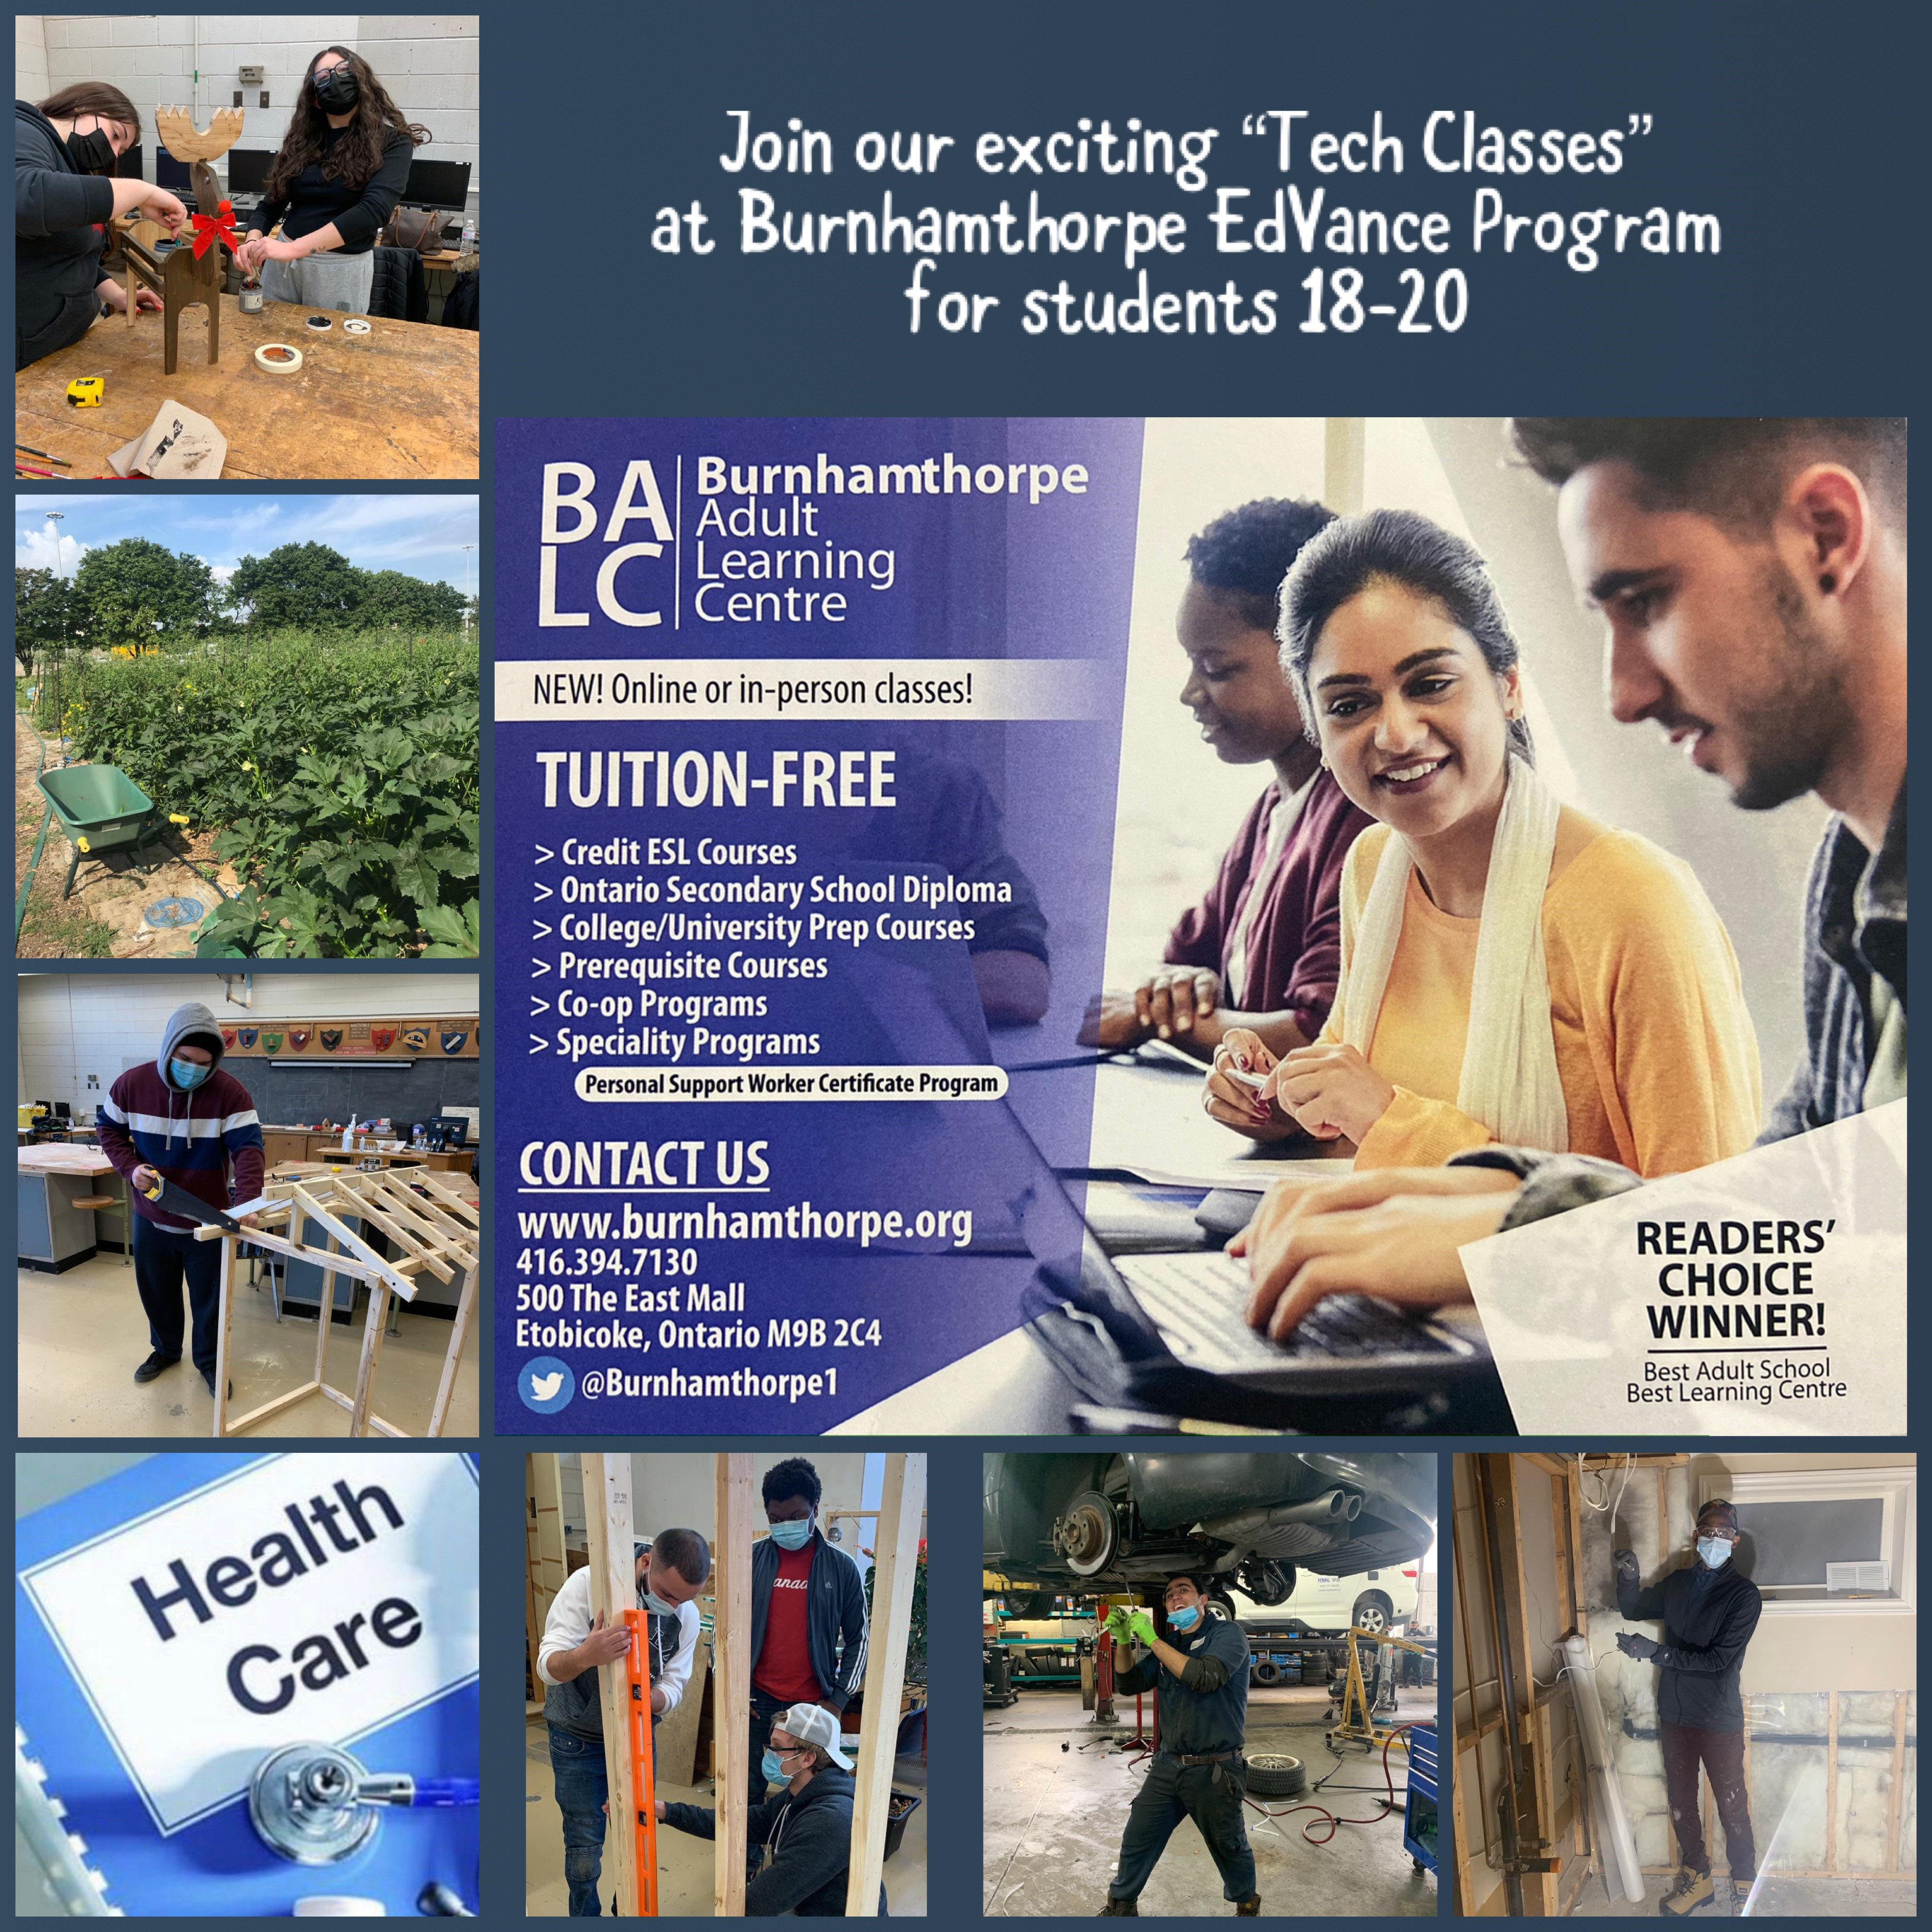 BCI EdVance Exciting Tech Programs